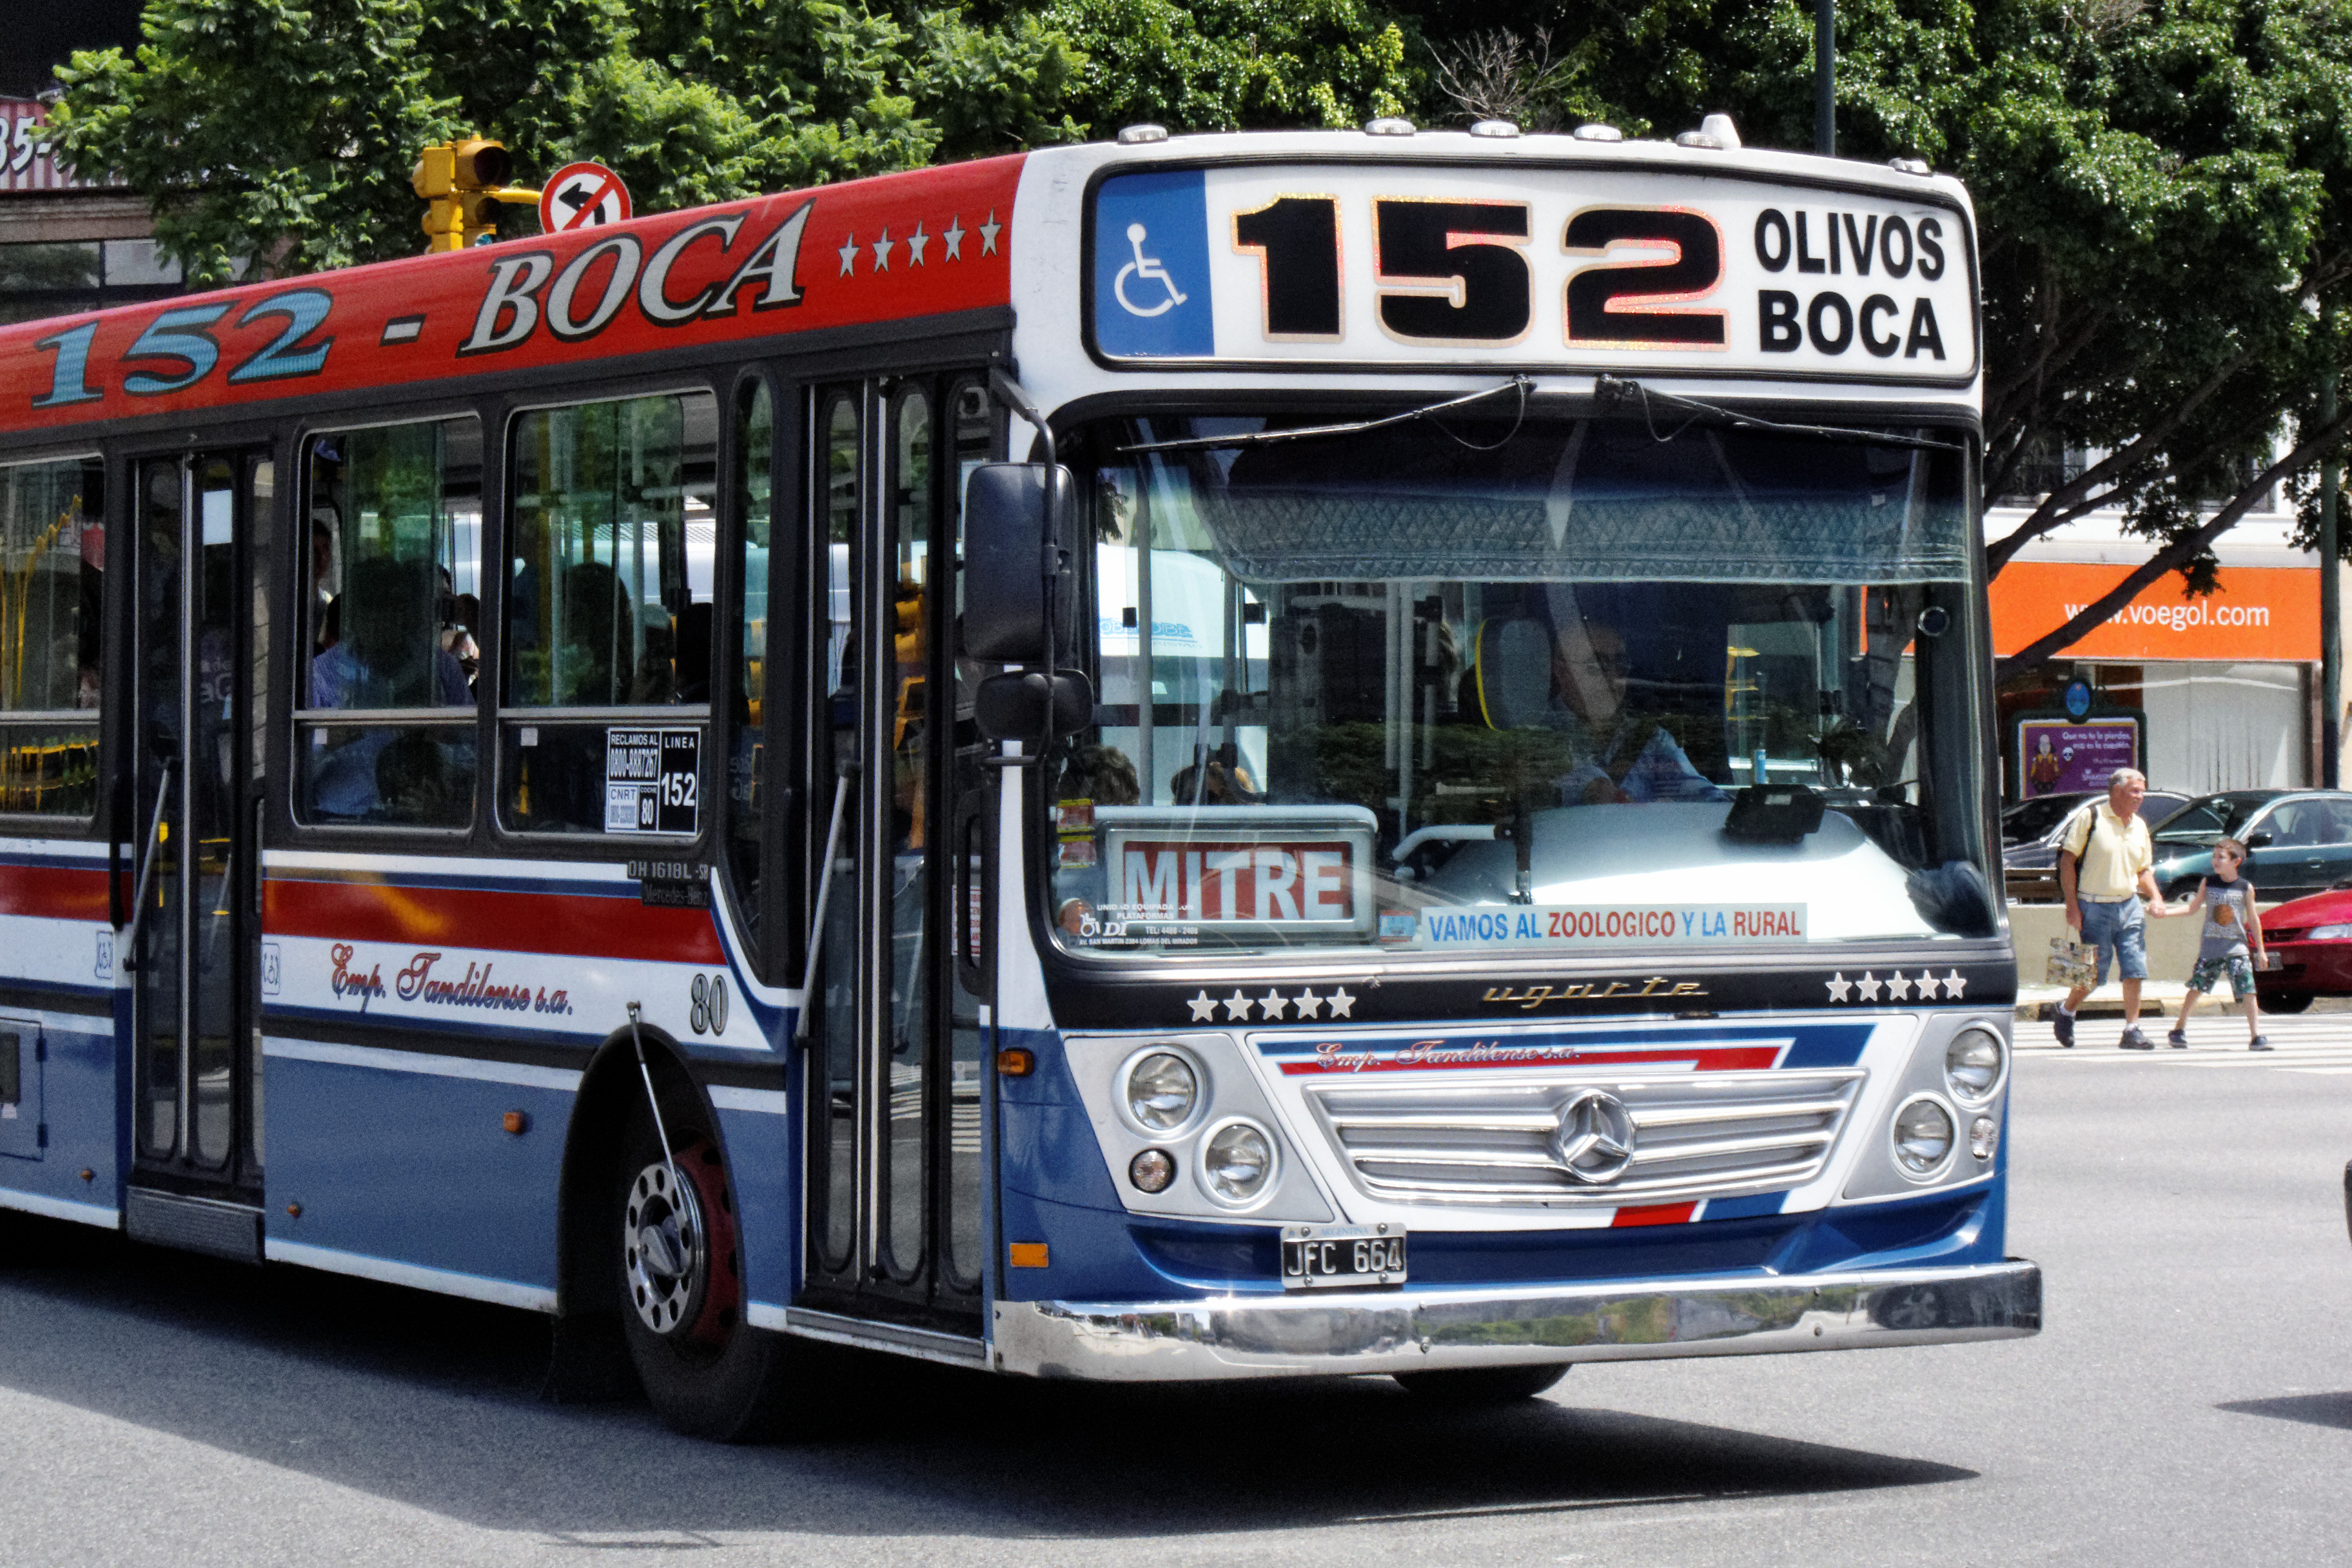 File:Buenos Aires - Colectivo 152 - 120209 111746.jpg